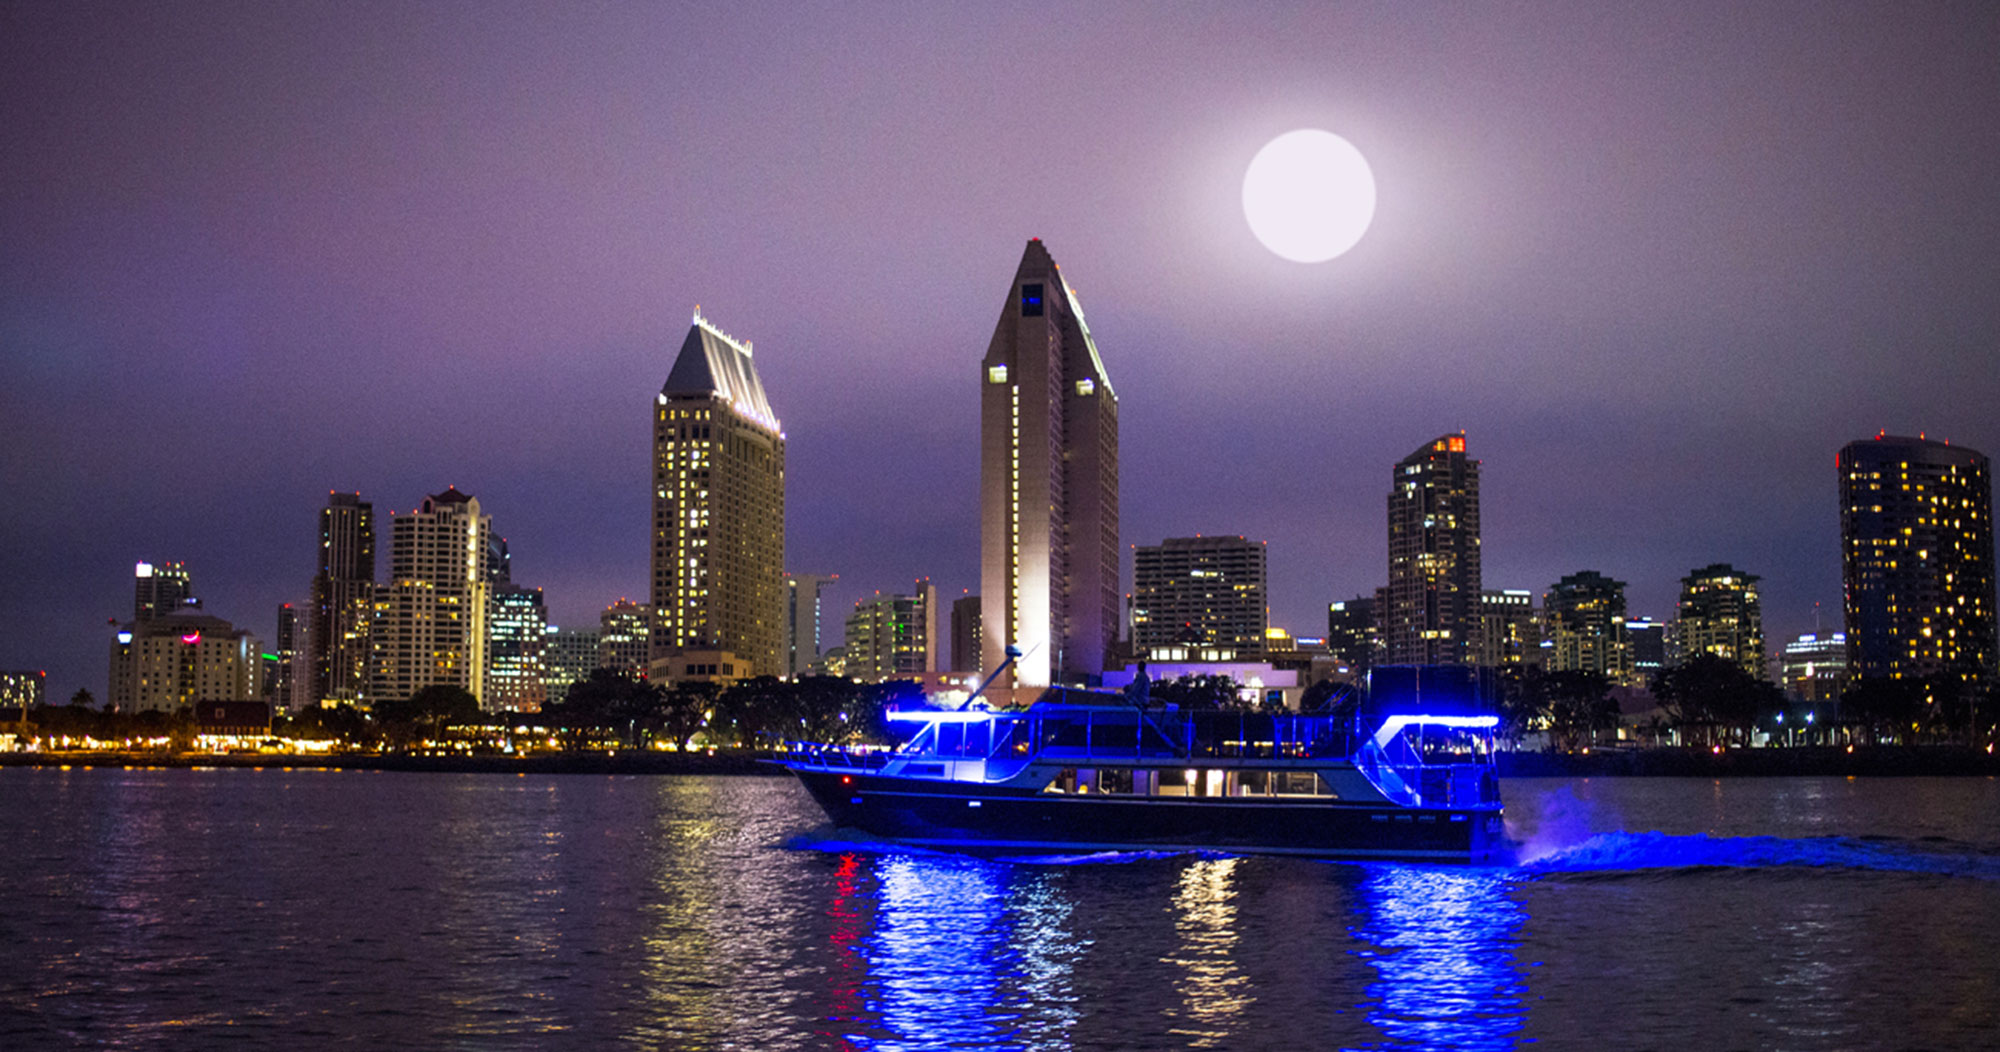 Bella Luna Yacht under the moon in the san diego bay